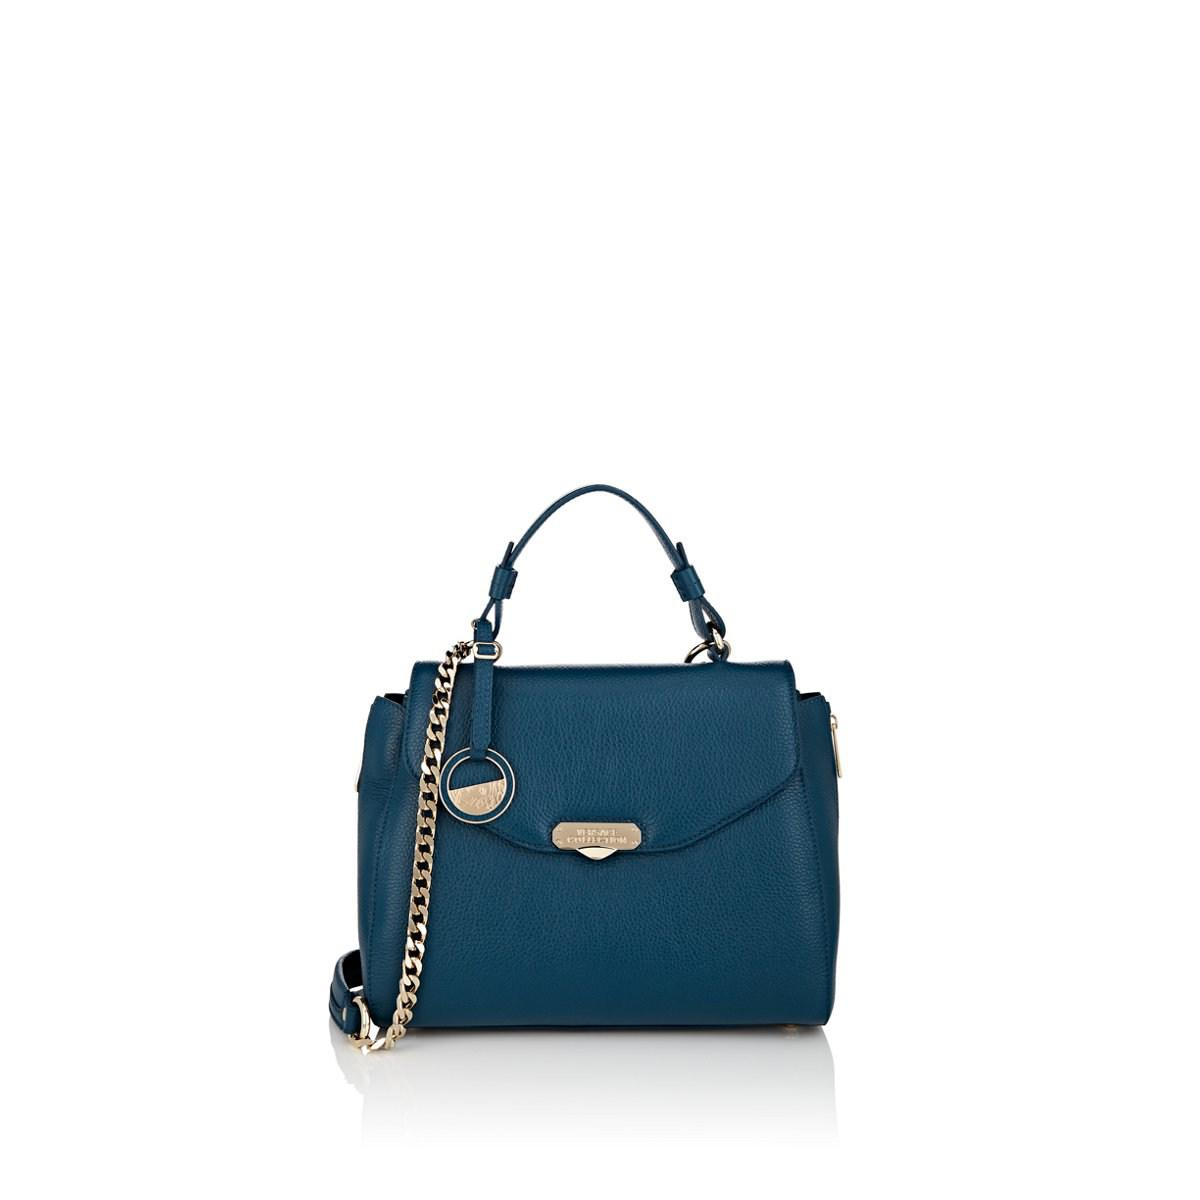 26b6f9df7ed9 Lyst - Versace Leather Satchel in Blue